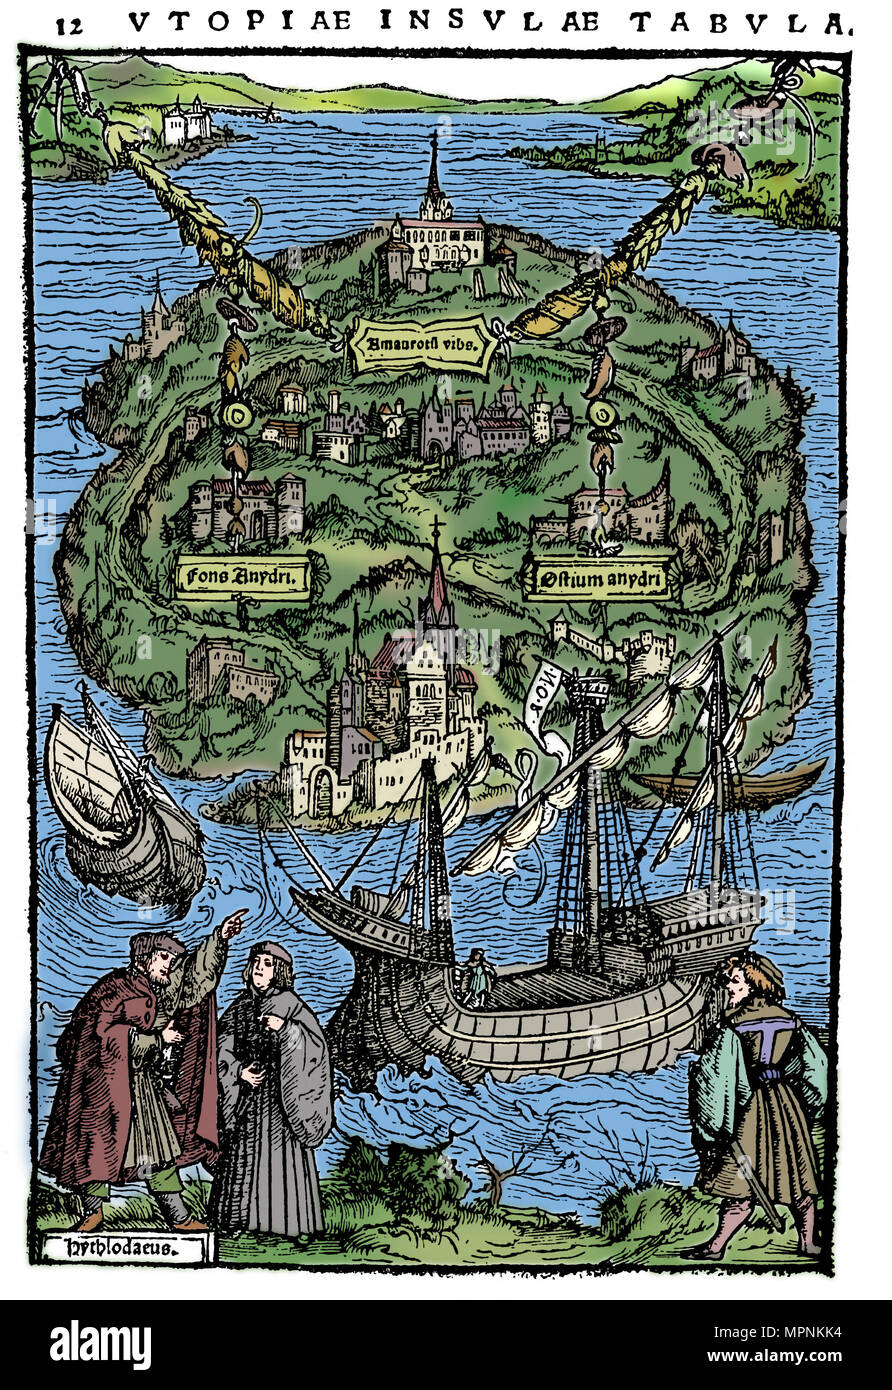 Plan of the island of Utopia, 1518. Artist: Unknown. - Stock Image